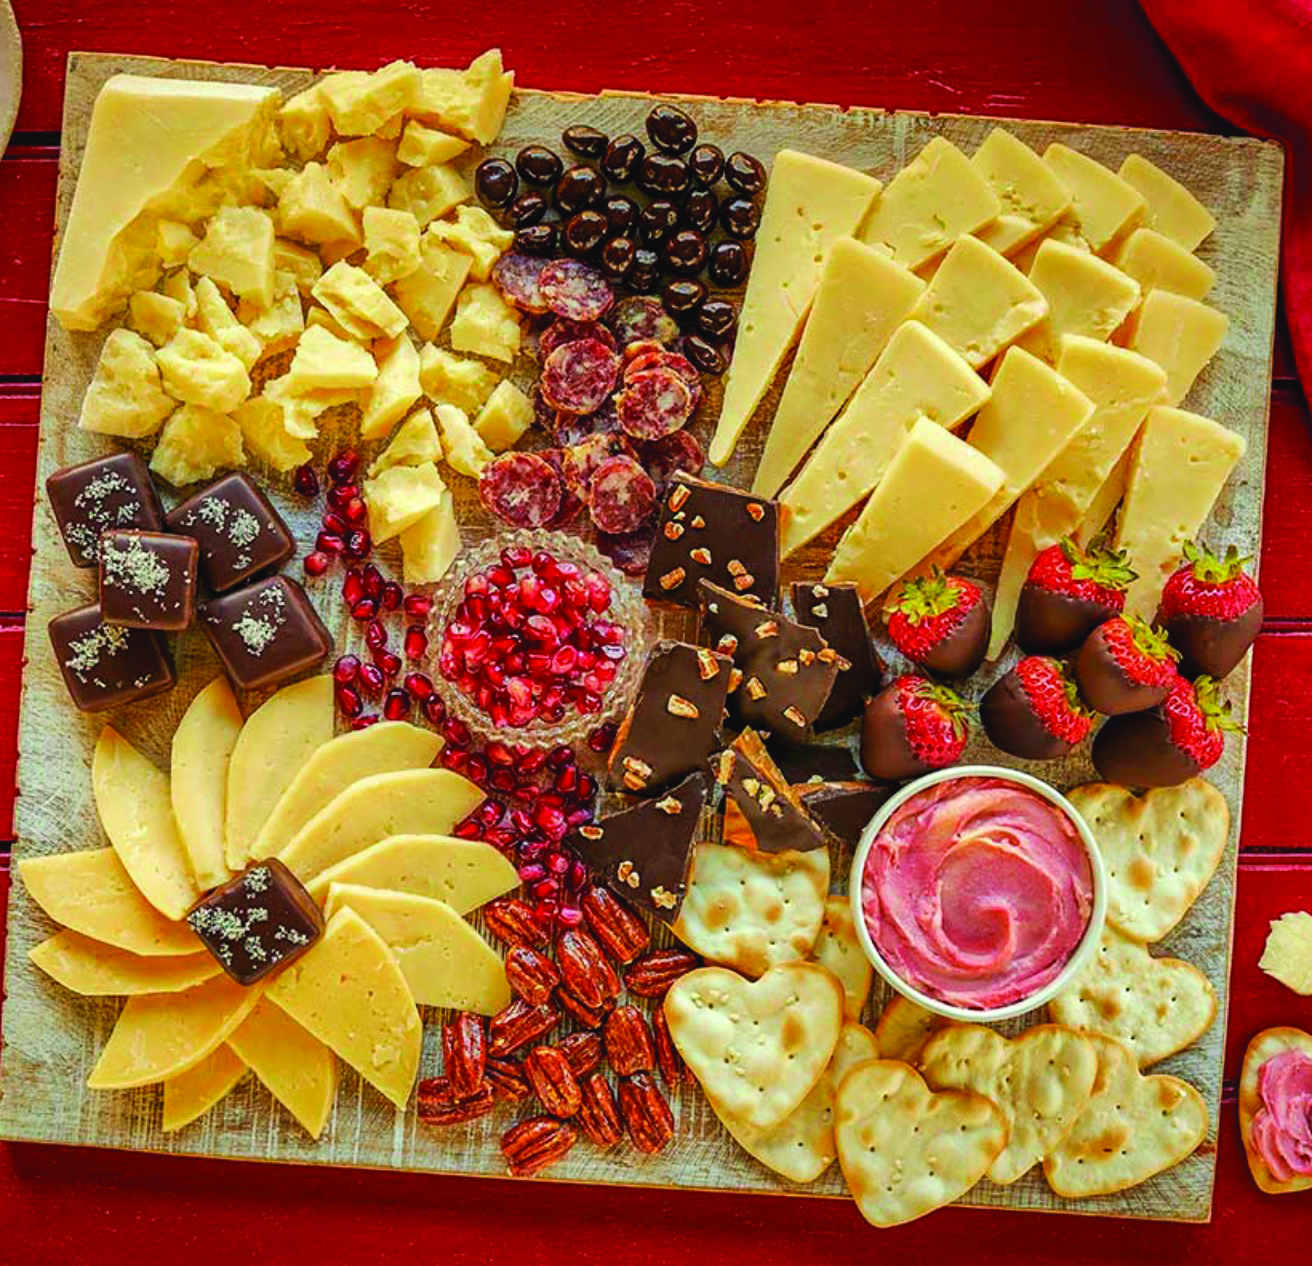 Christmas Themed Food.Cheese Boards For Holiday Entertaining Christmas Themed Maine Adult Education